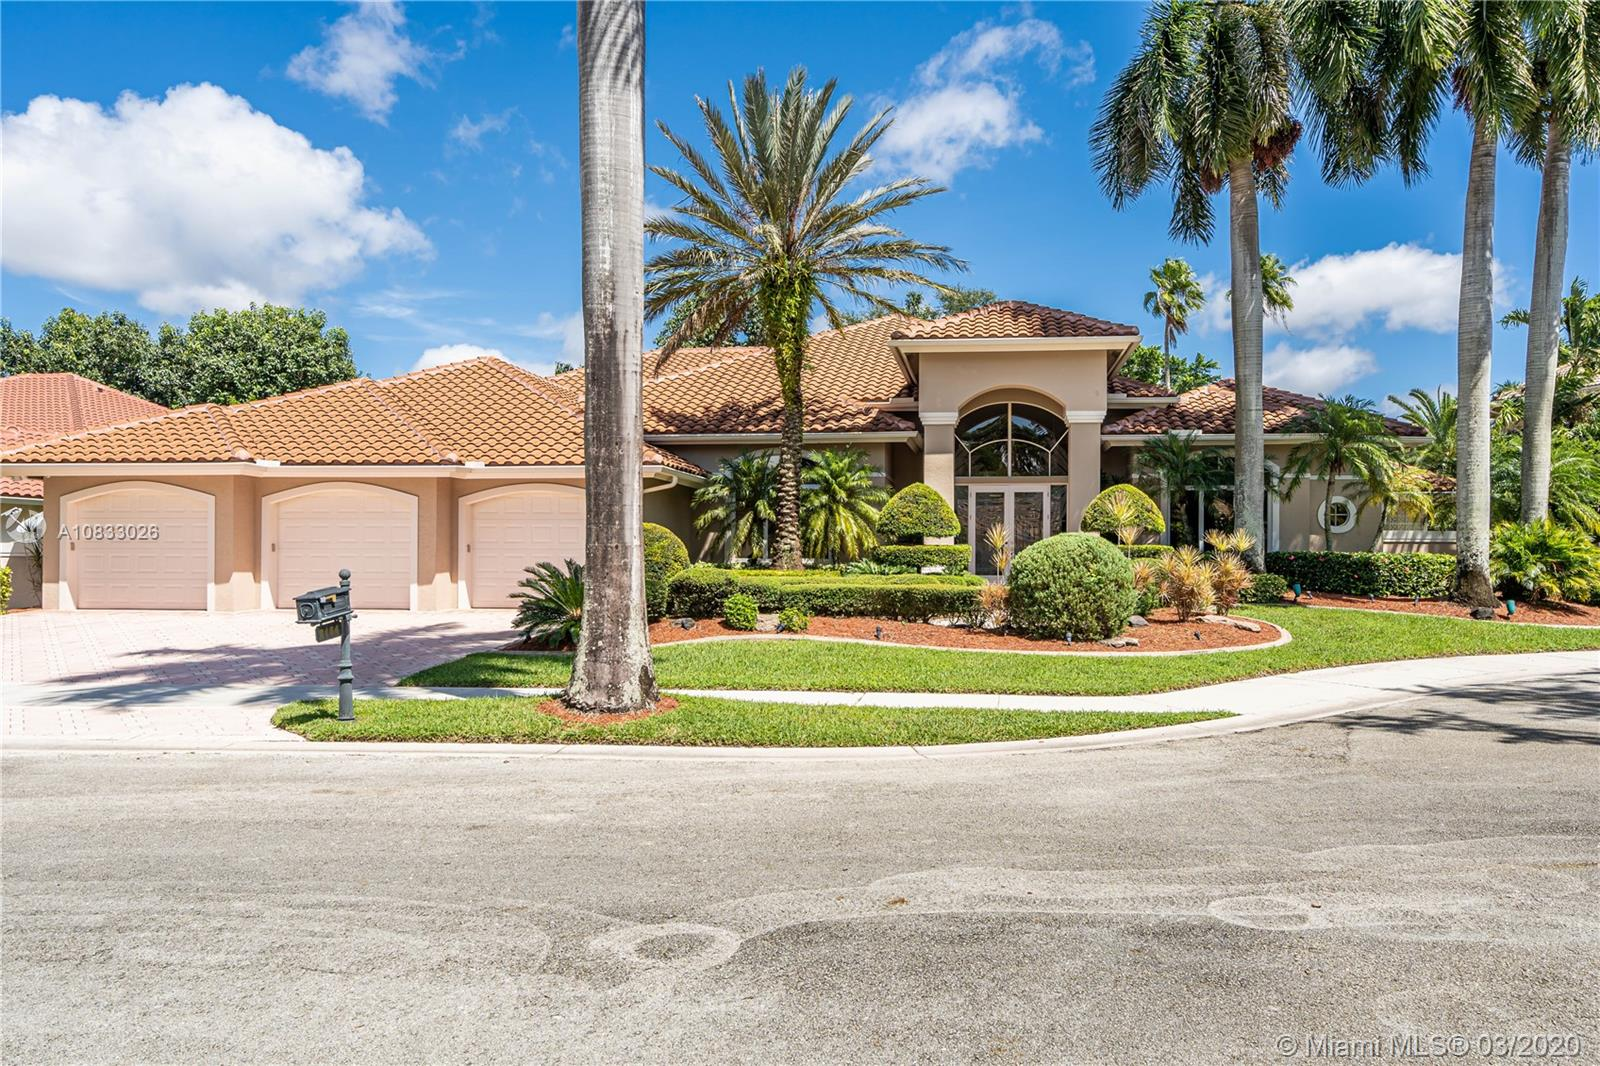 3164  Inverness  For Sale A10833026, FL